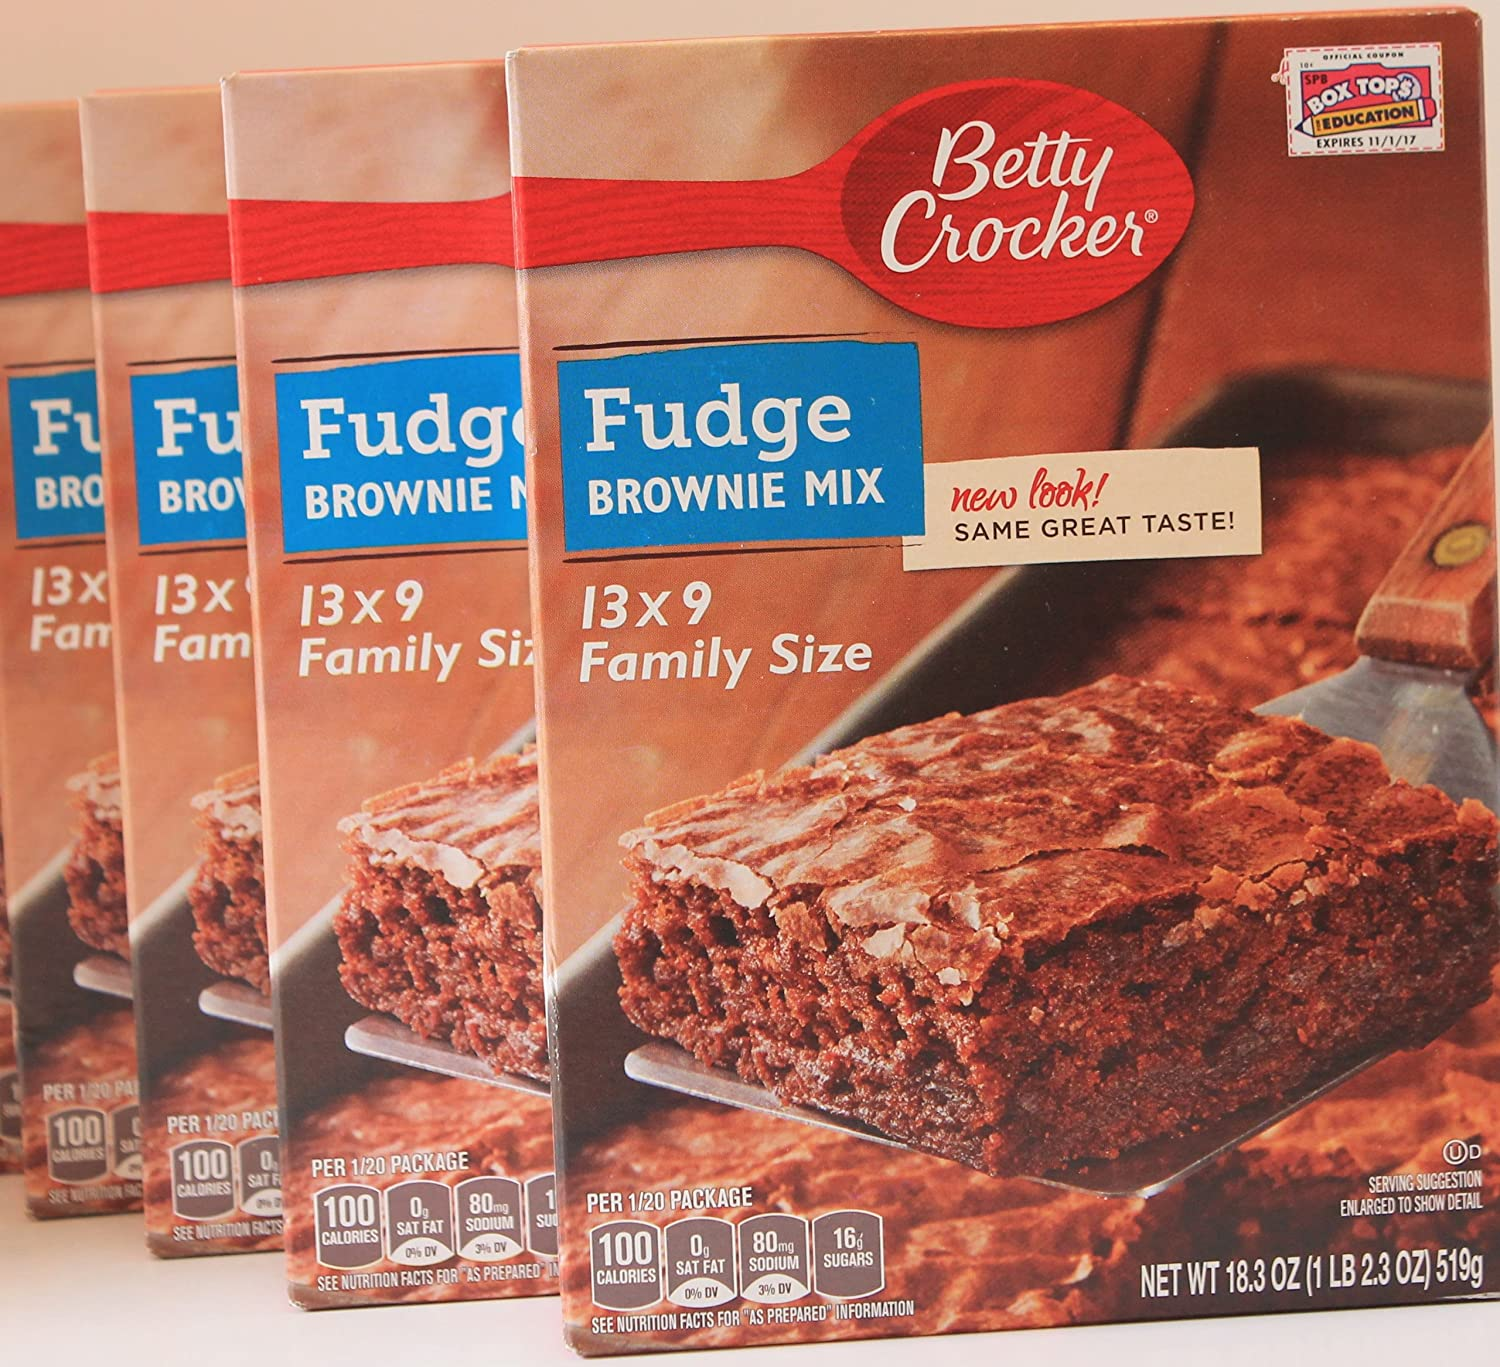 Chocolate Fudge Recipe - m 2